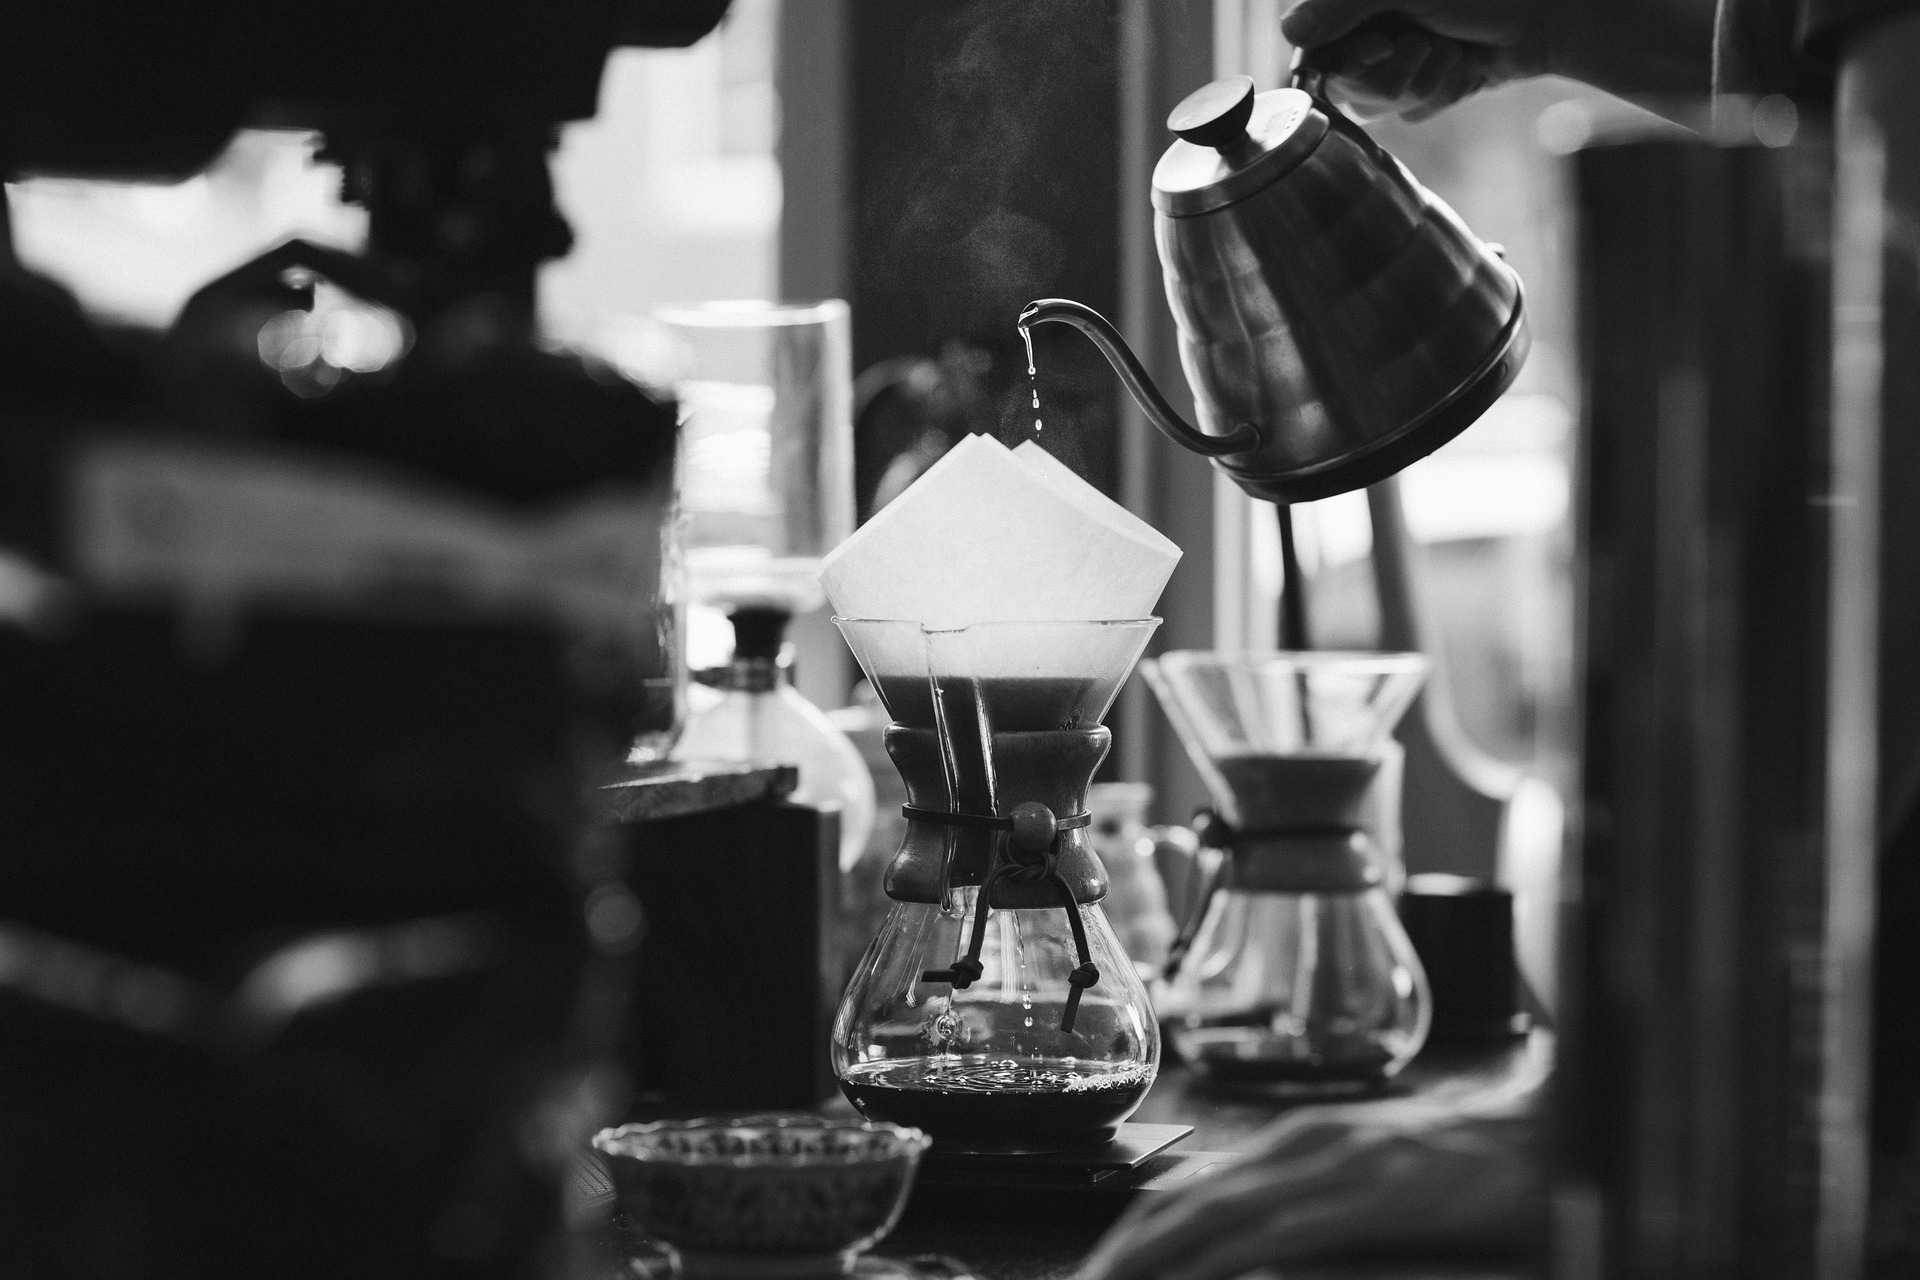 A barista pours water over ground coffee in a Chemex on a cafe bar